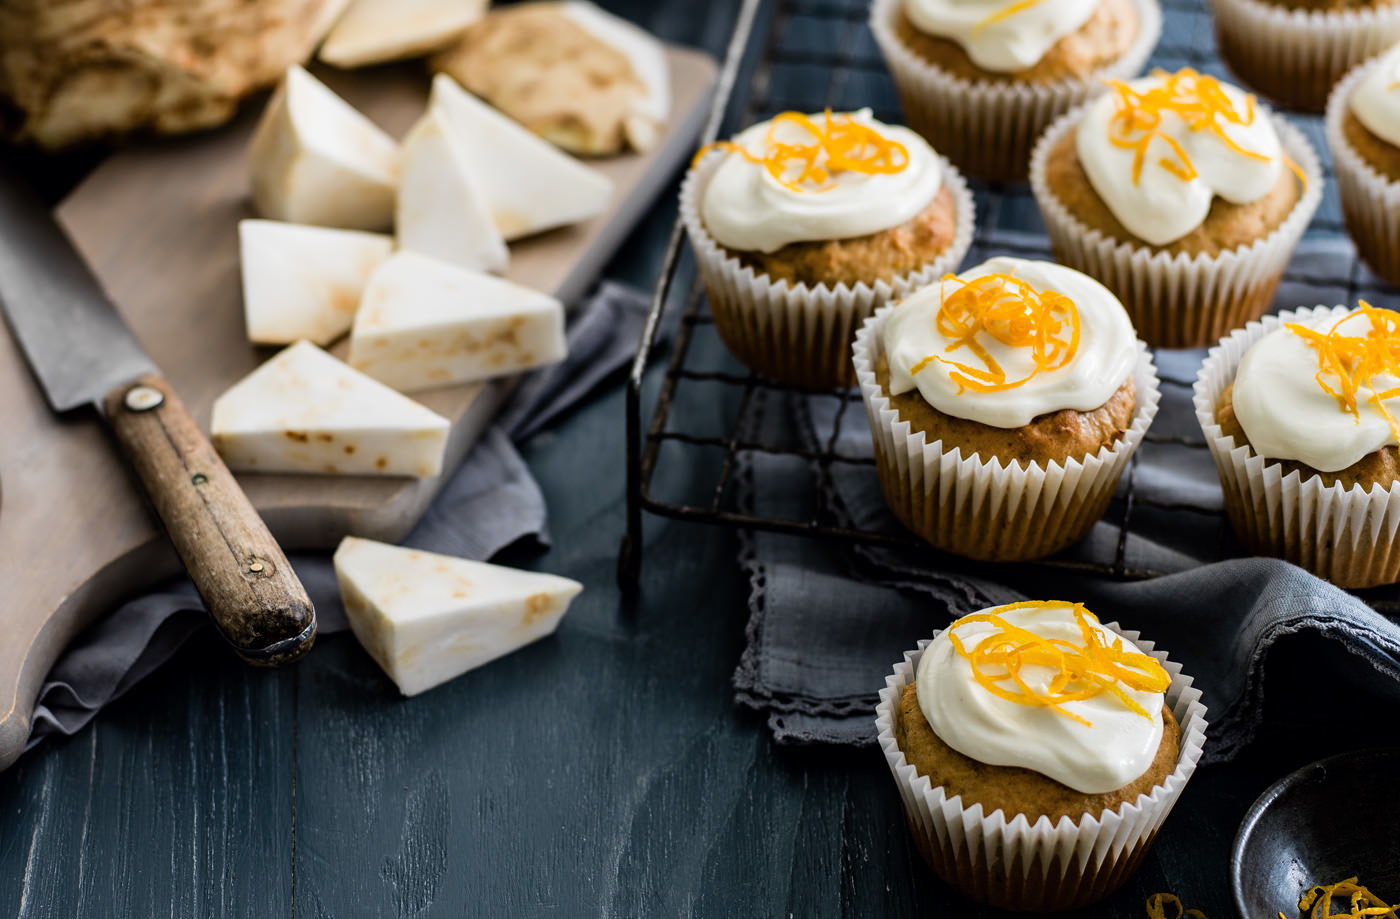 Celeriac and walnut muffins with cream cheese frosting recipe